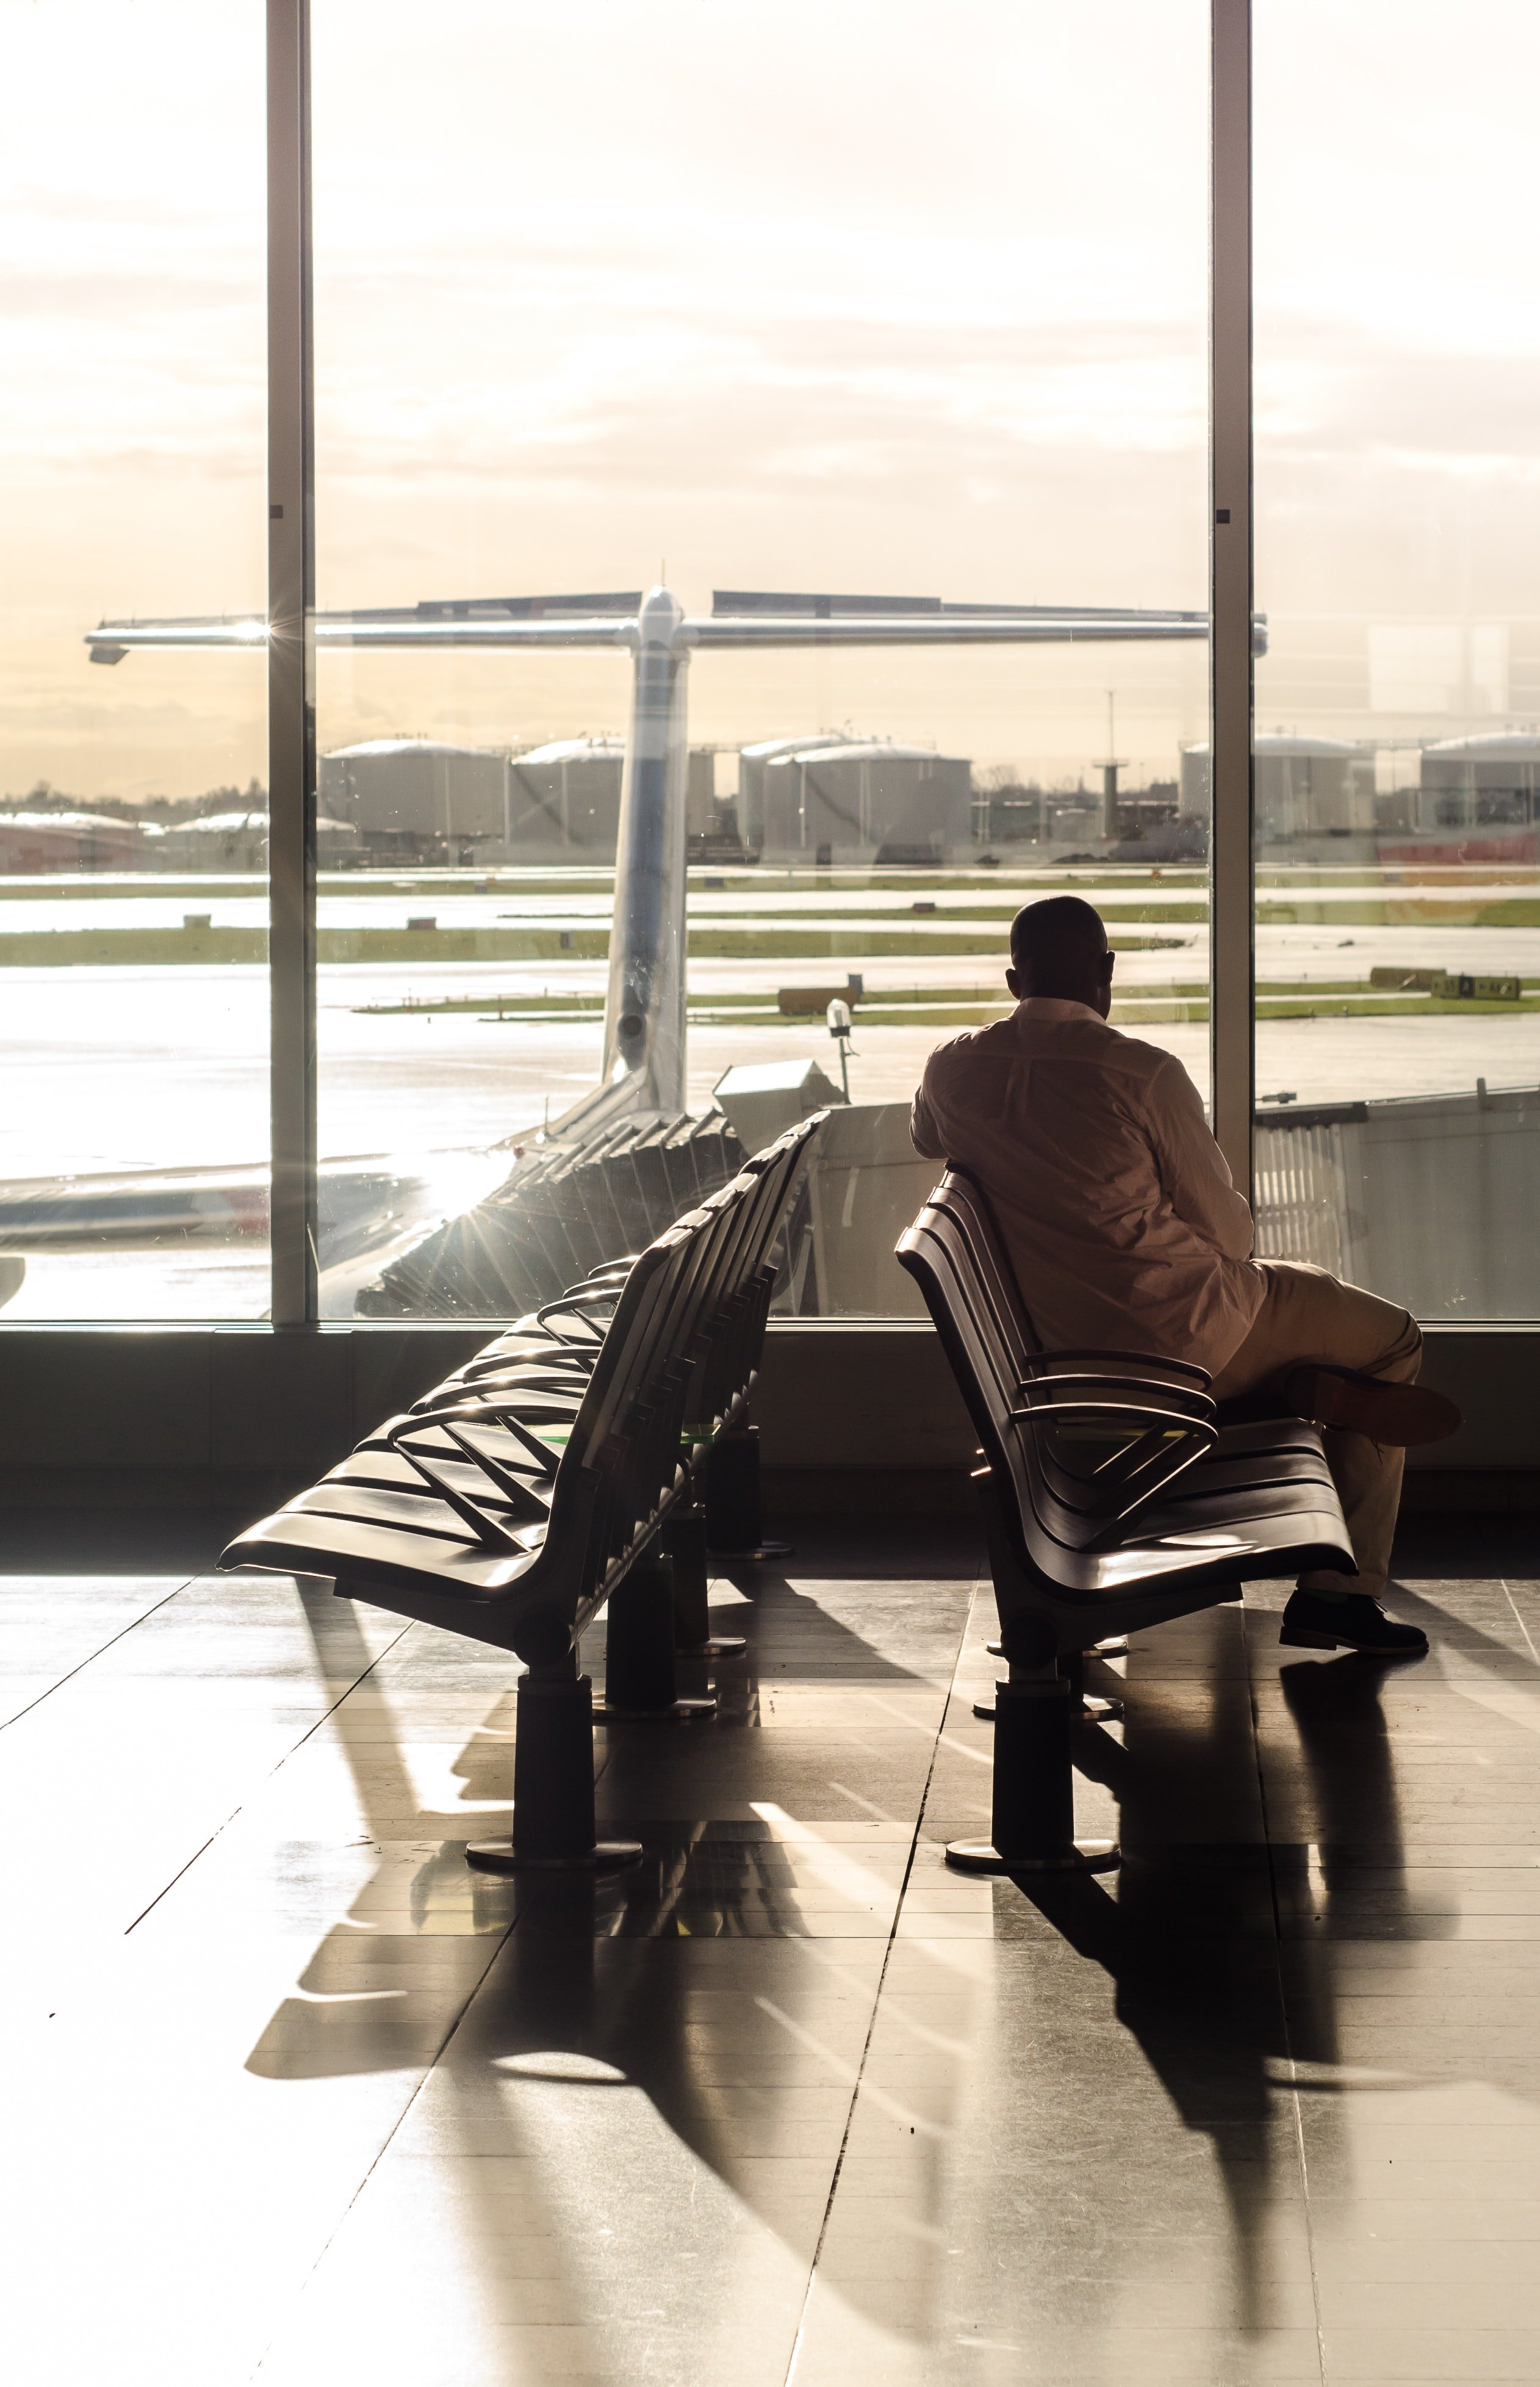 A photo of a man at the airport waiting for his flight. | Photo: Pexels